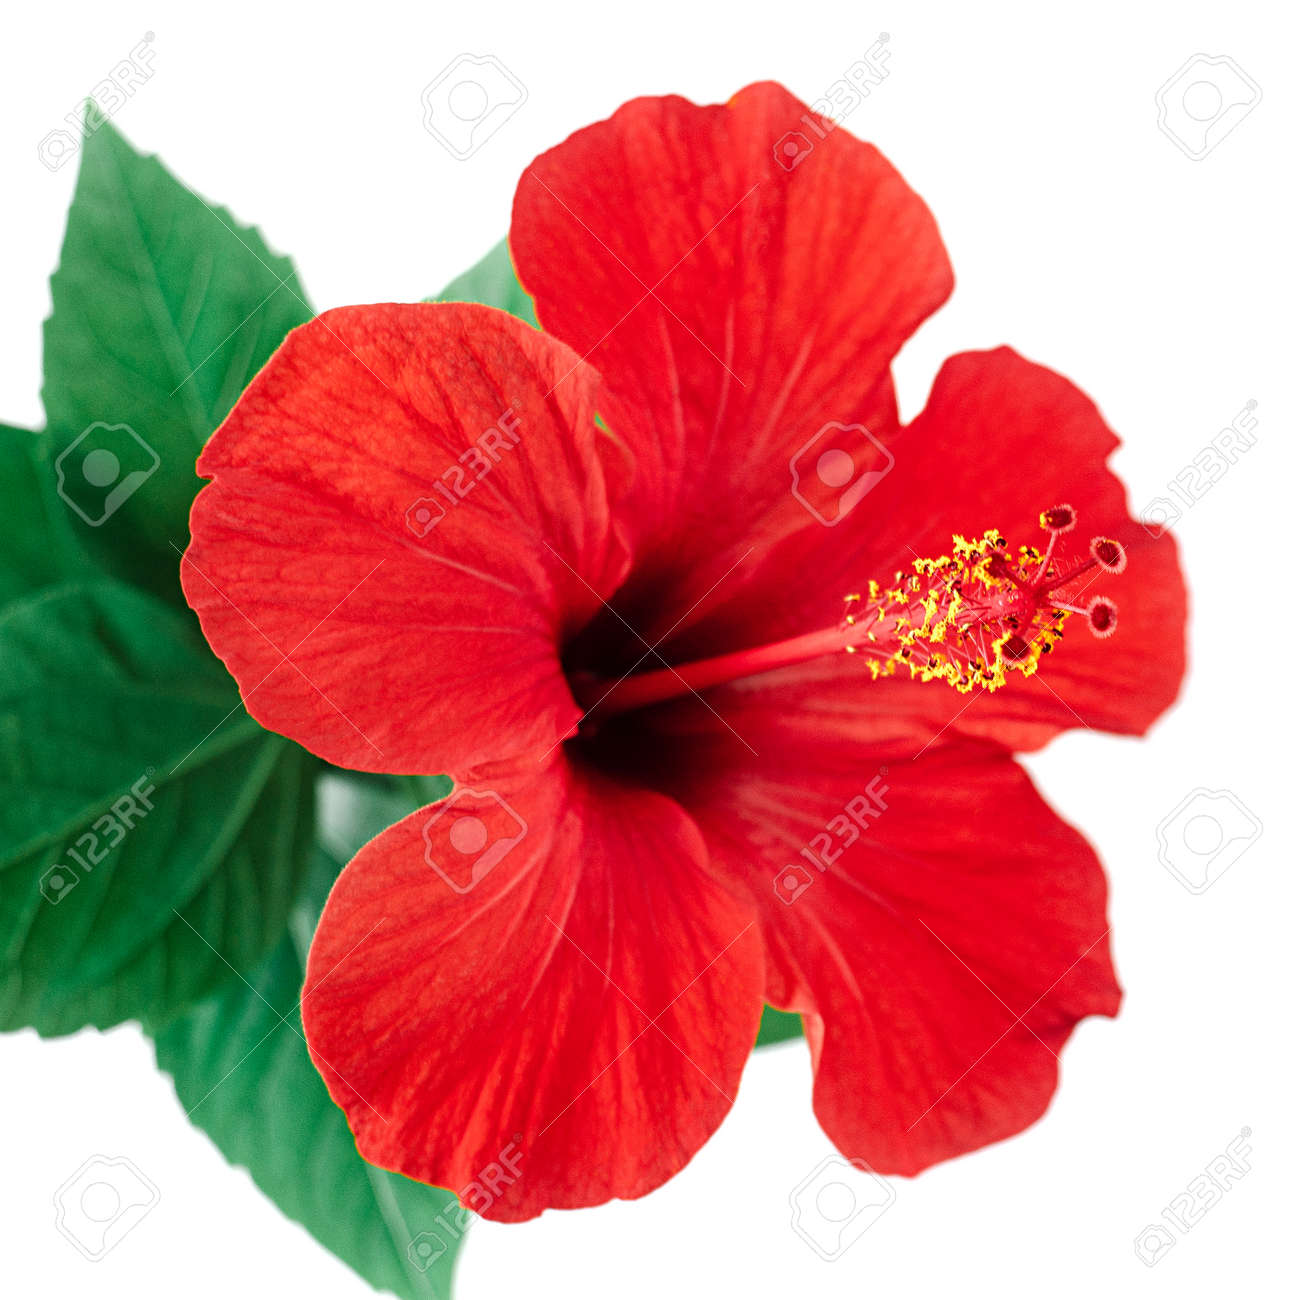 Red Hibiscus Flower Isolated On White Background With Clipping Stock Photo Picture And Royalty Free Image Image 120600053